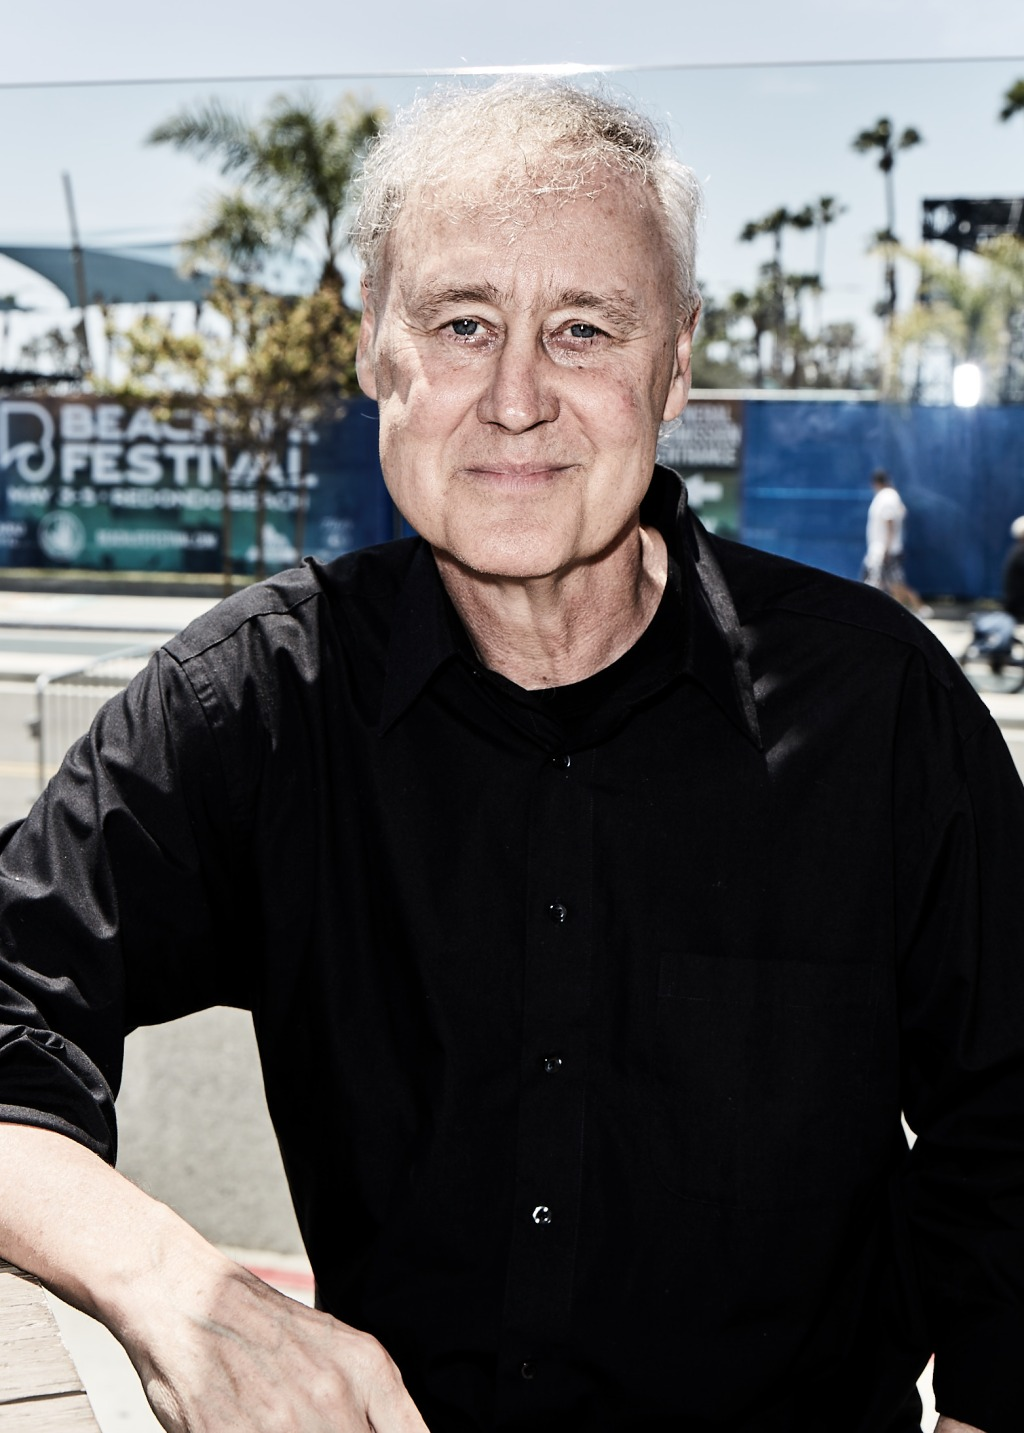 Bruce Hornsby backstage at BeachLife Music Festival in Redondo Beach, California on May 3-5th, 2019.